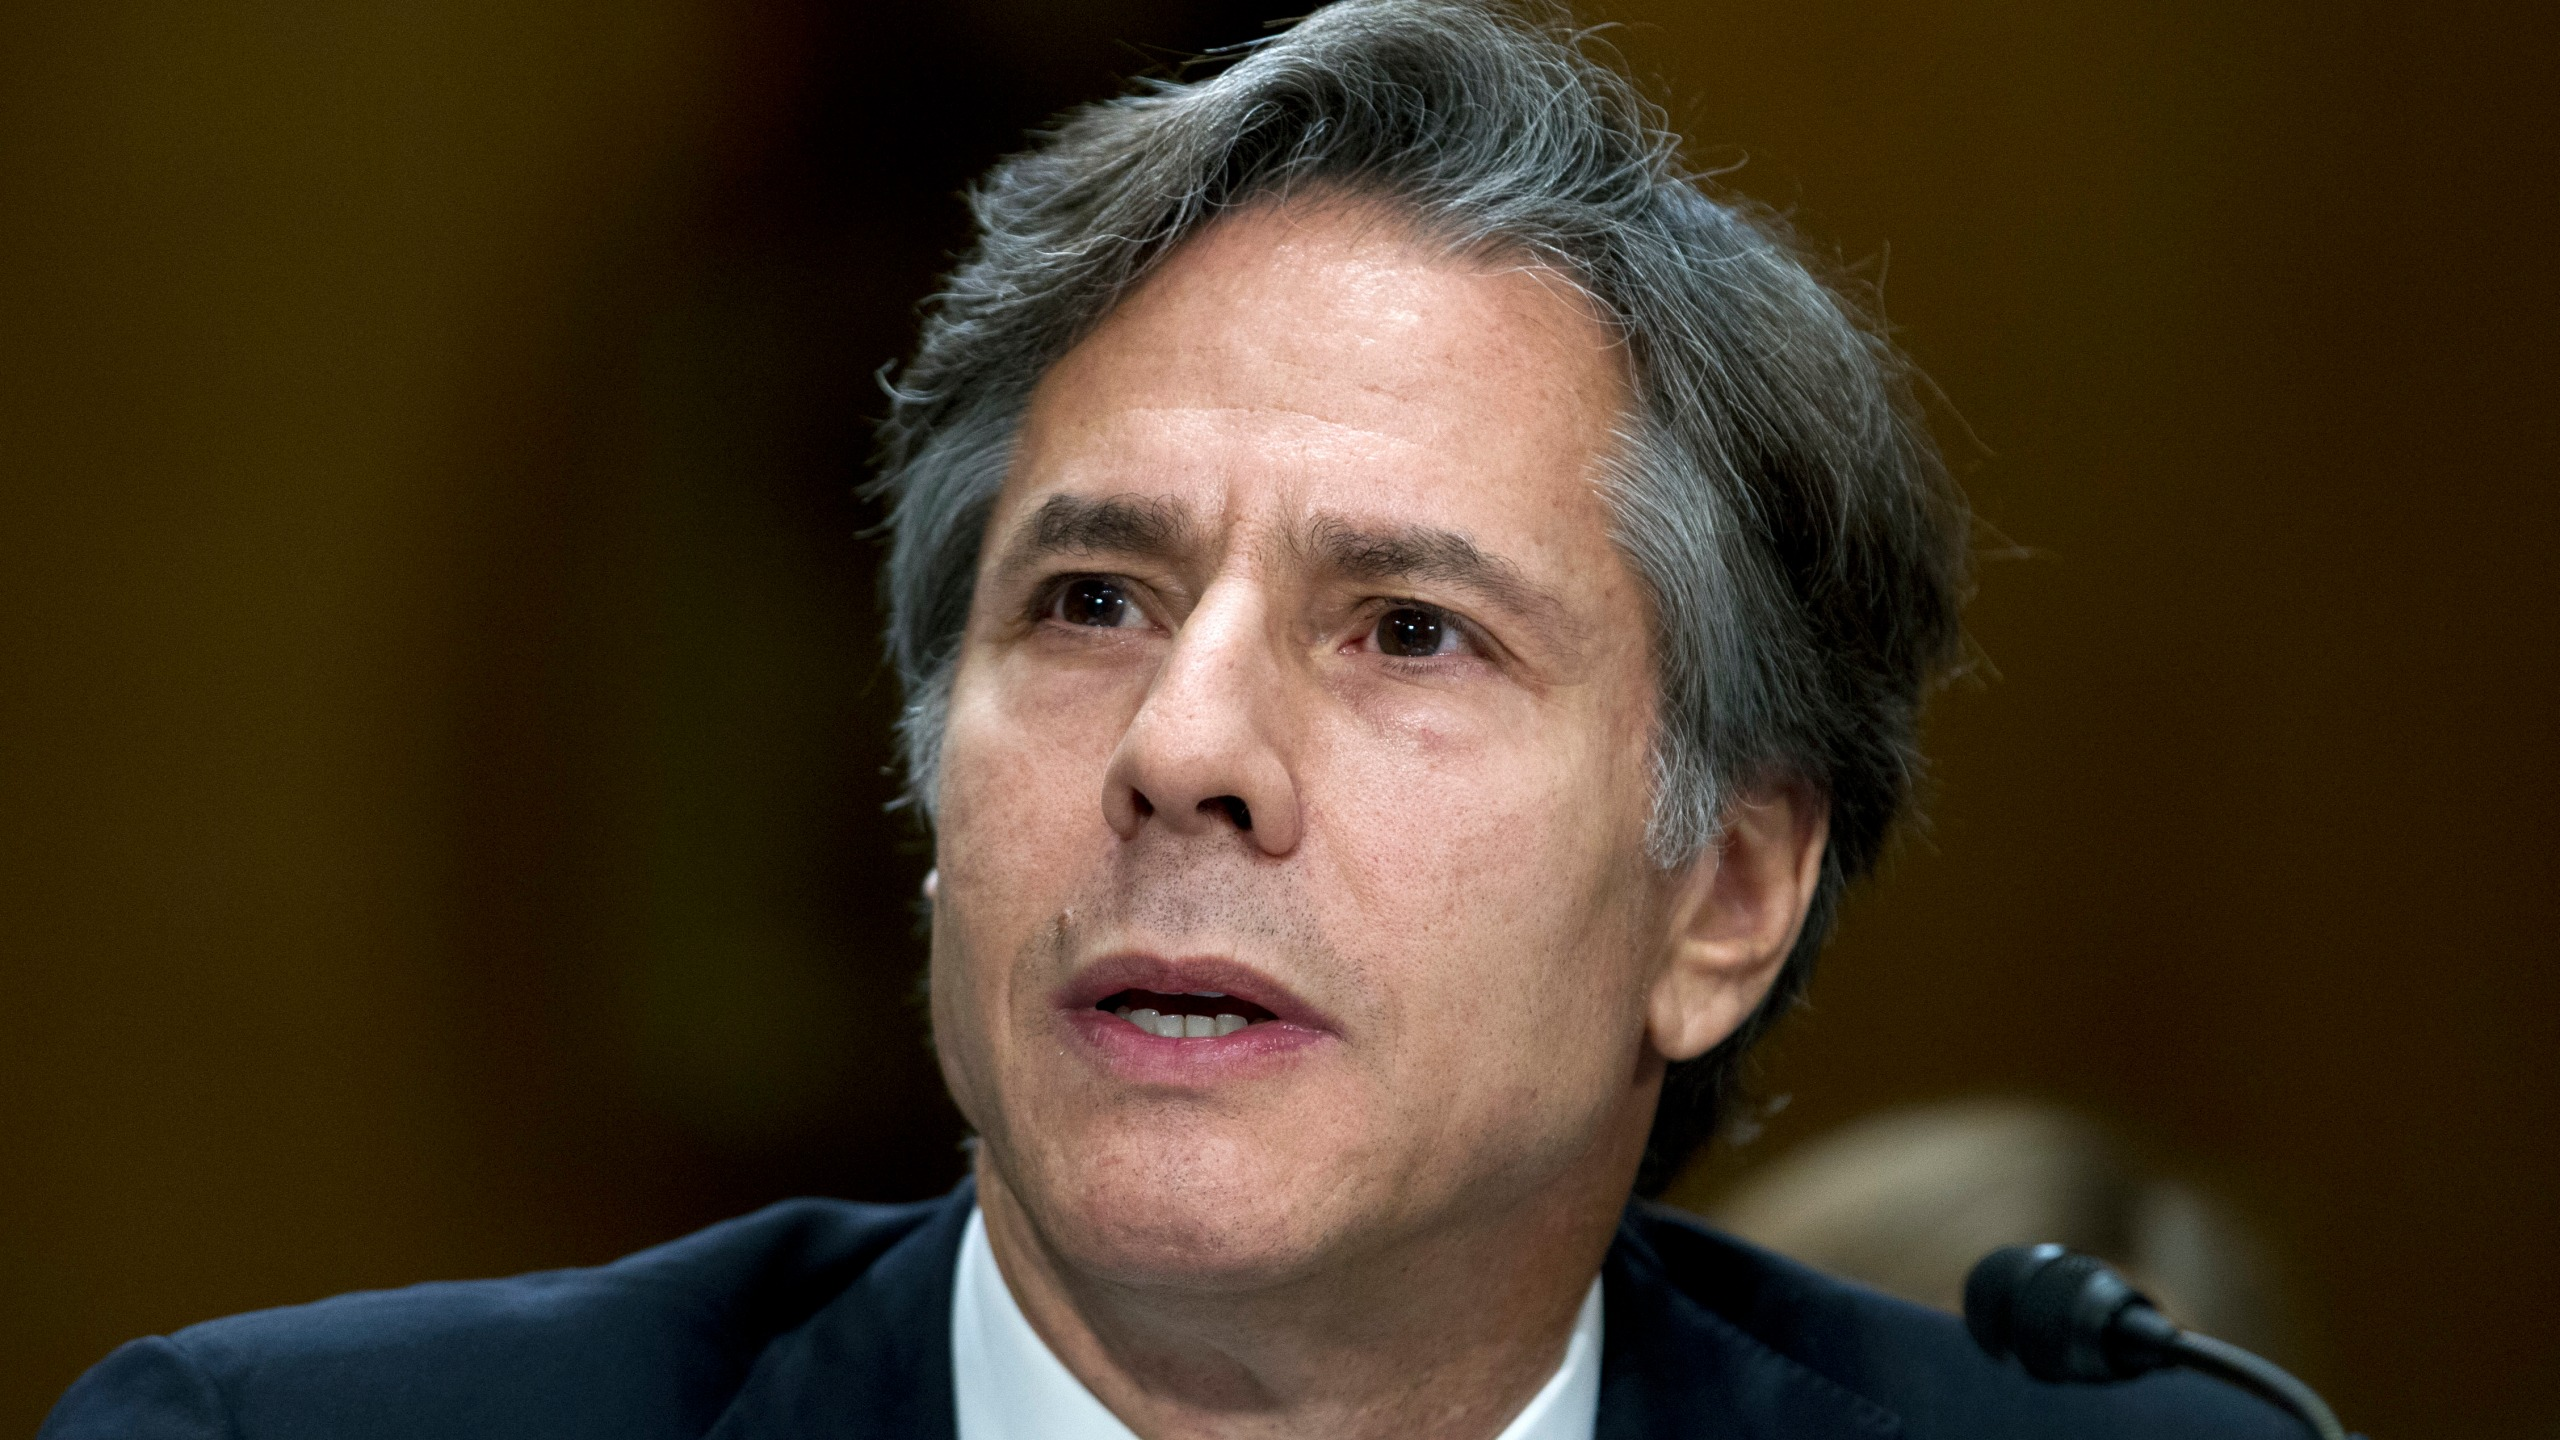 In this Thursday, Sept. 29, 2016, file photo, Deputy Secretary of State Antony Blinken testifies on Capitol Hill in Washington, before the Senate Foreign Relations Committee hearing on Syria. (AP Photo/Jose Luis Magana, File)